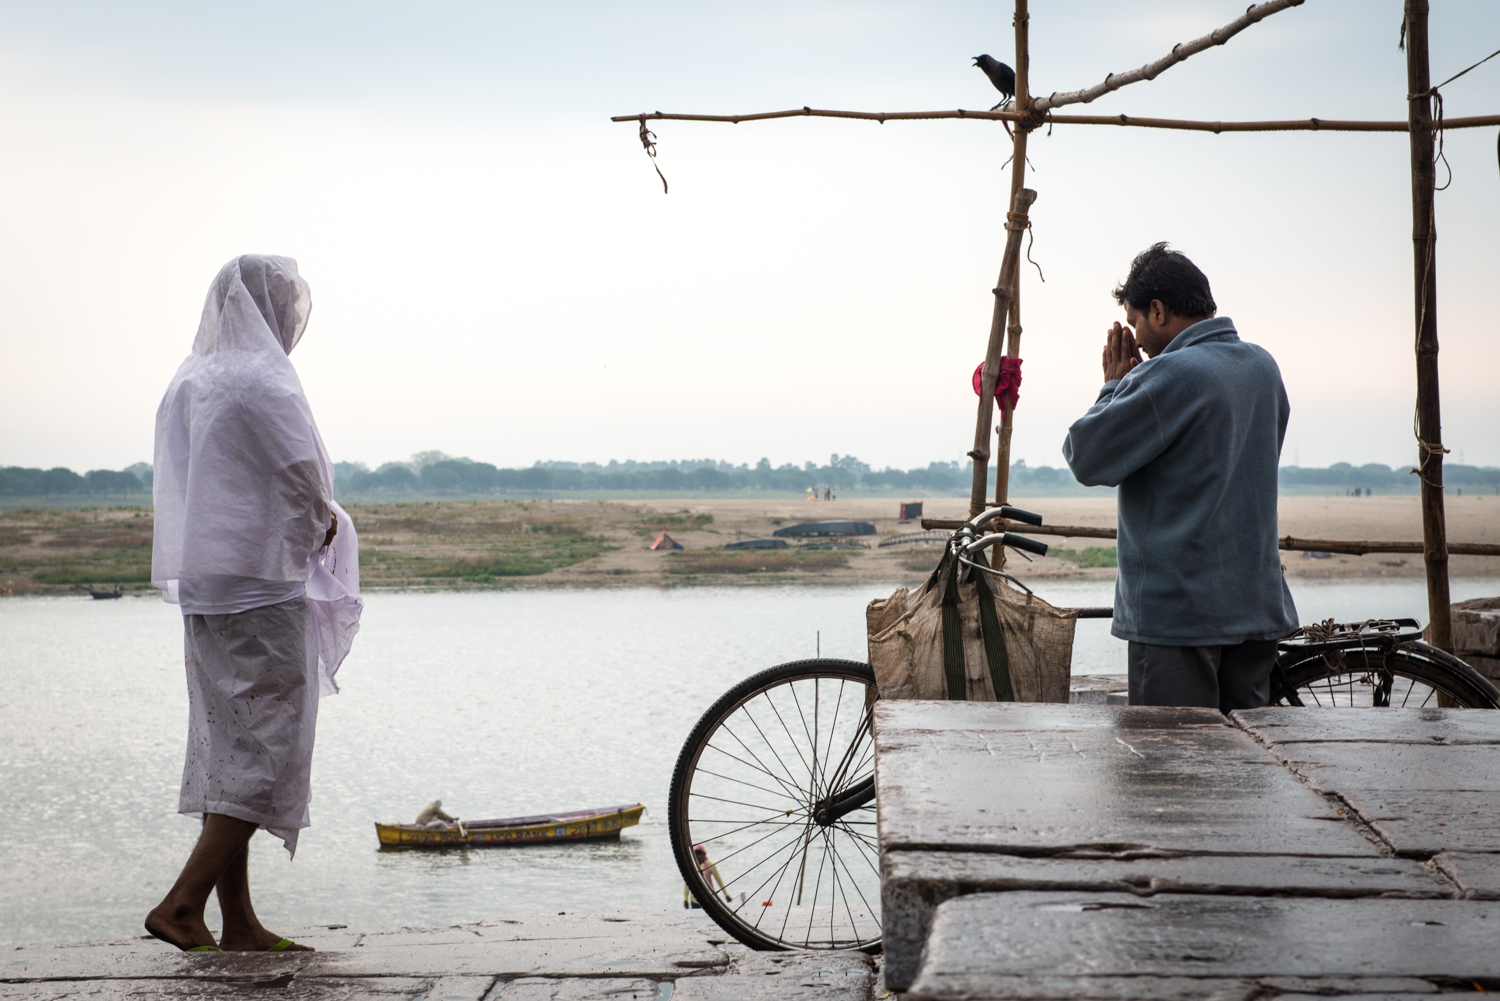 The man on the left wears white to respect the resent passing of a family member. The man on the bicycle pays respects with a 'Namaste' to the mourner,while a black crow looks on above - Varanasi, India.